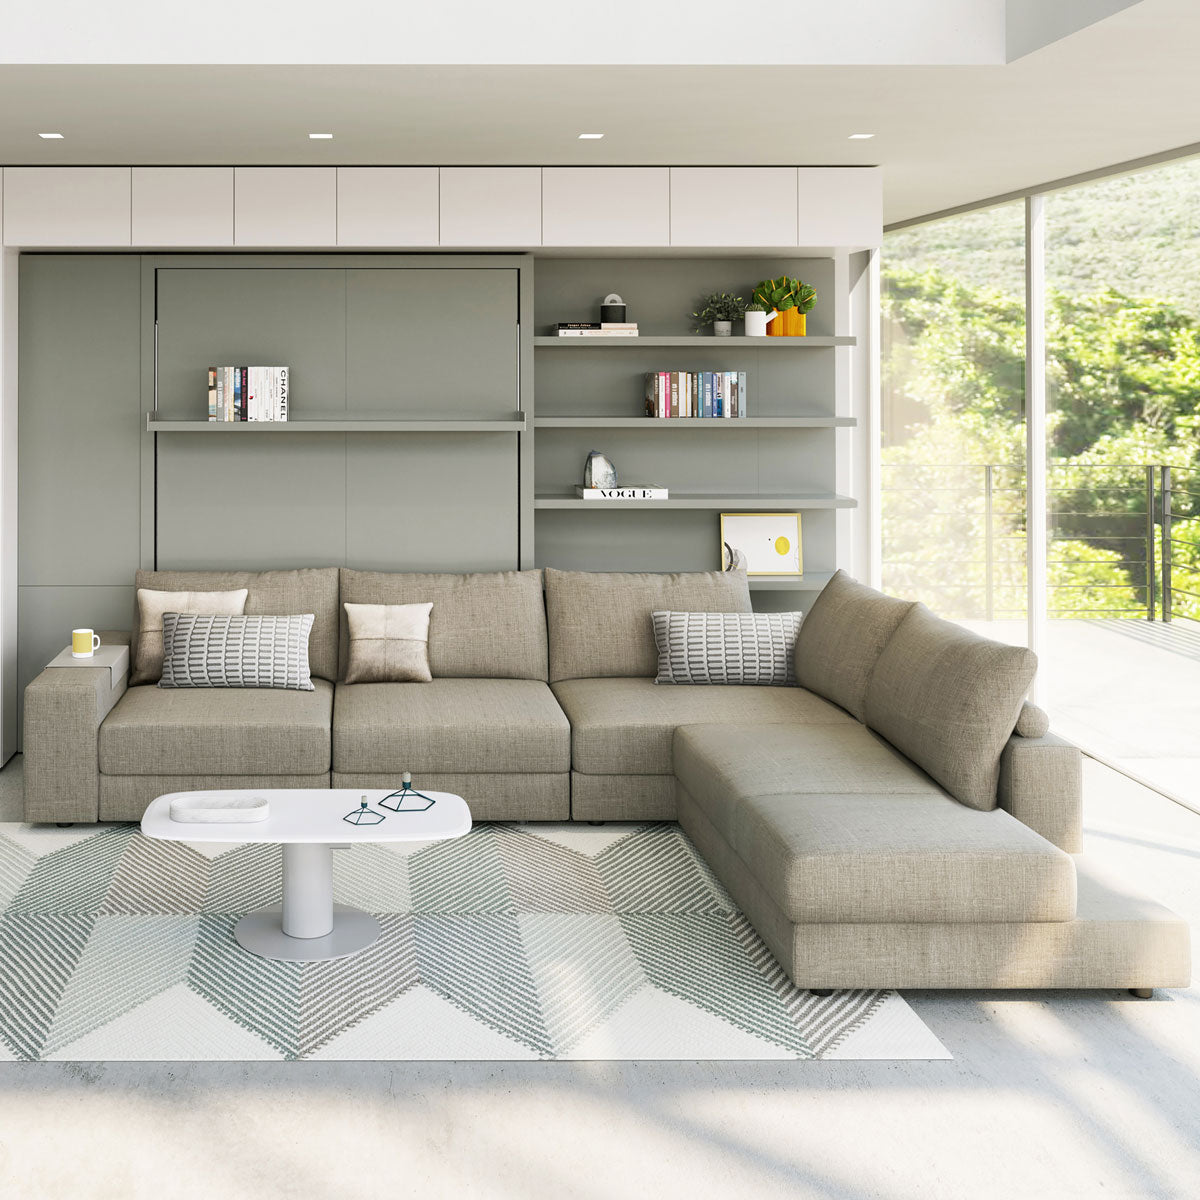 Clie Transformable Sectional Sofa and Murphy Bed